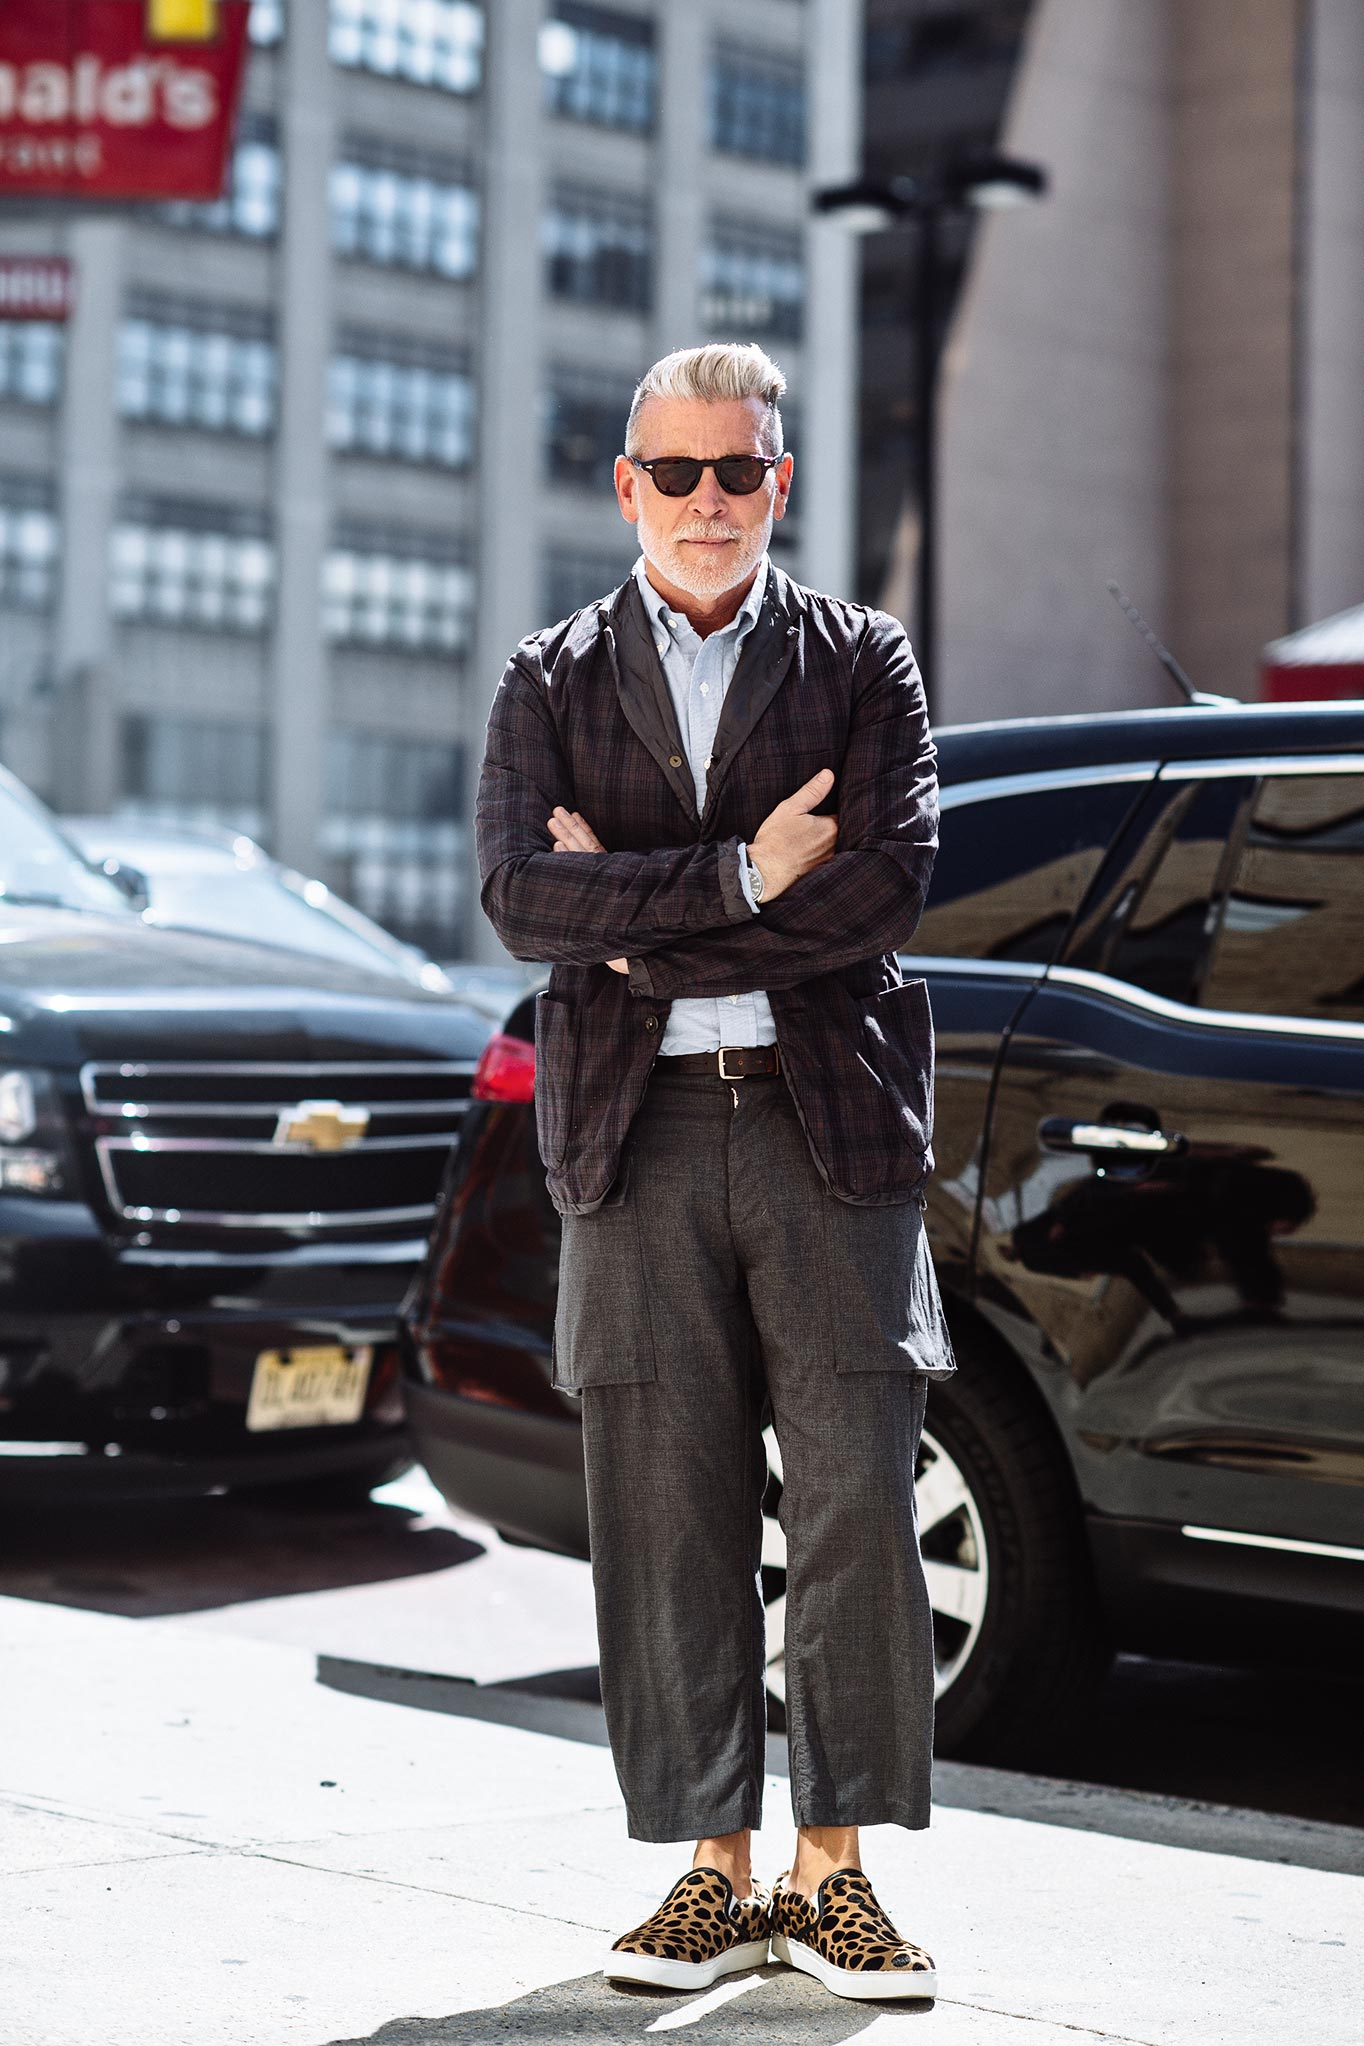 Nickelson Wooster at New York Fashion Week Spring/Summer 2015